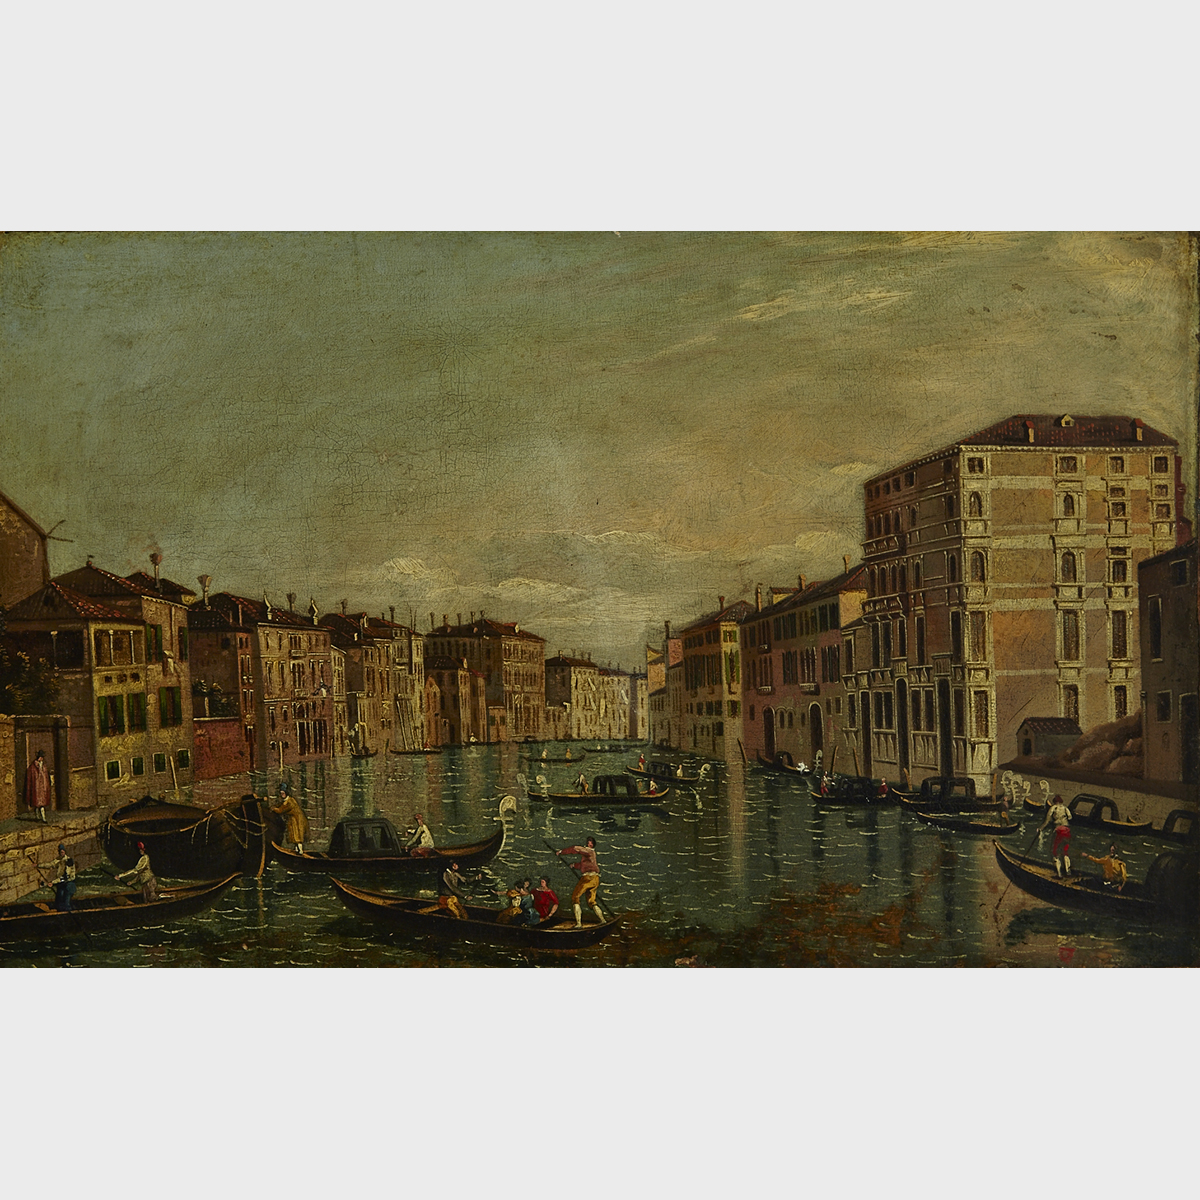 Follower of Canaletto (1697-1768)